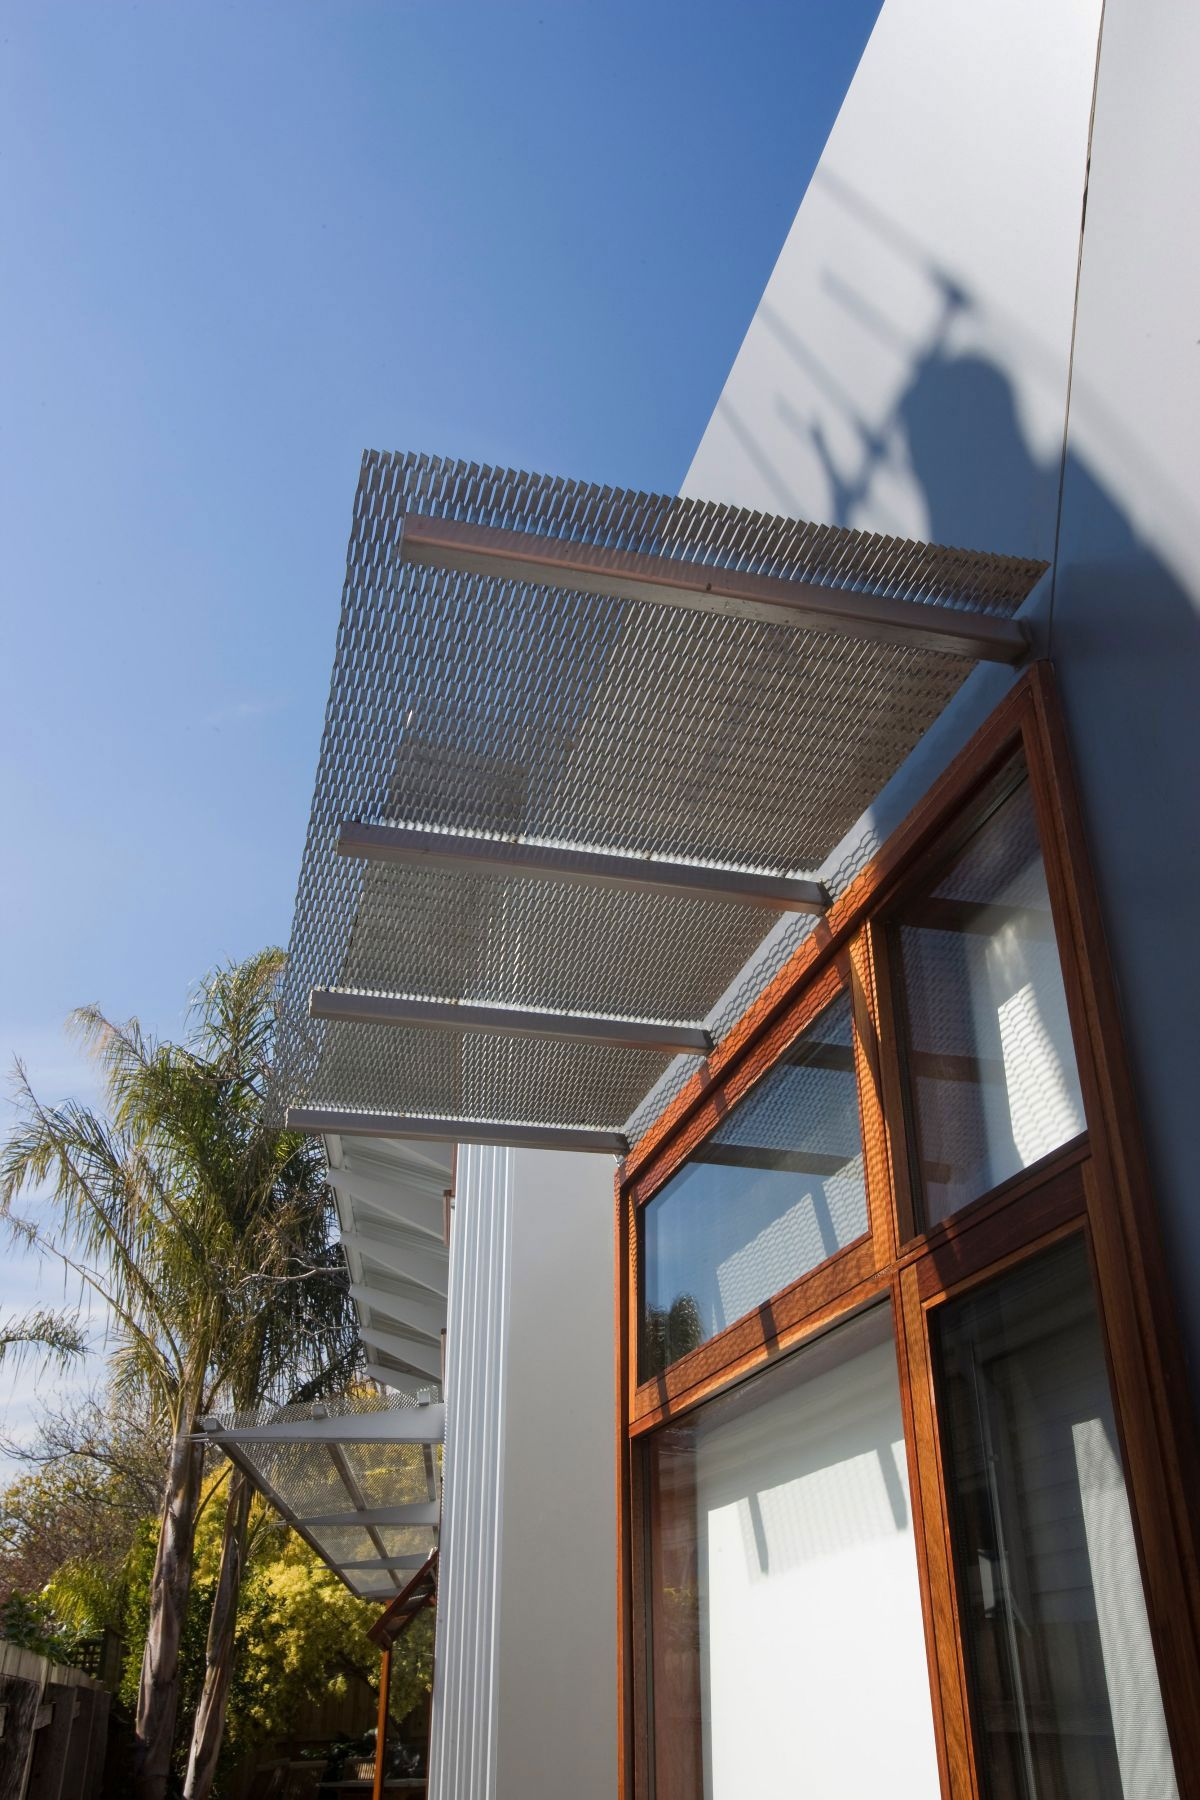 Modern Single House Design With Steel Mesh Awnings And Wooden